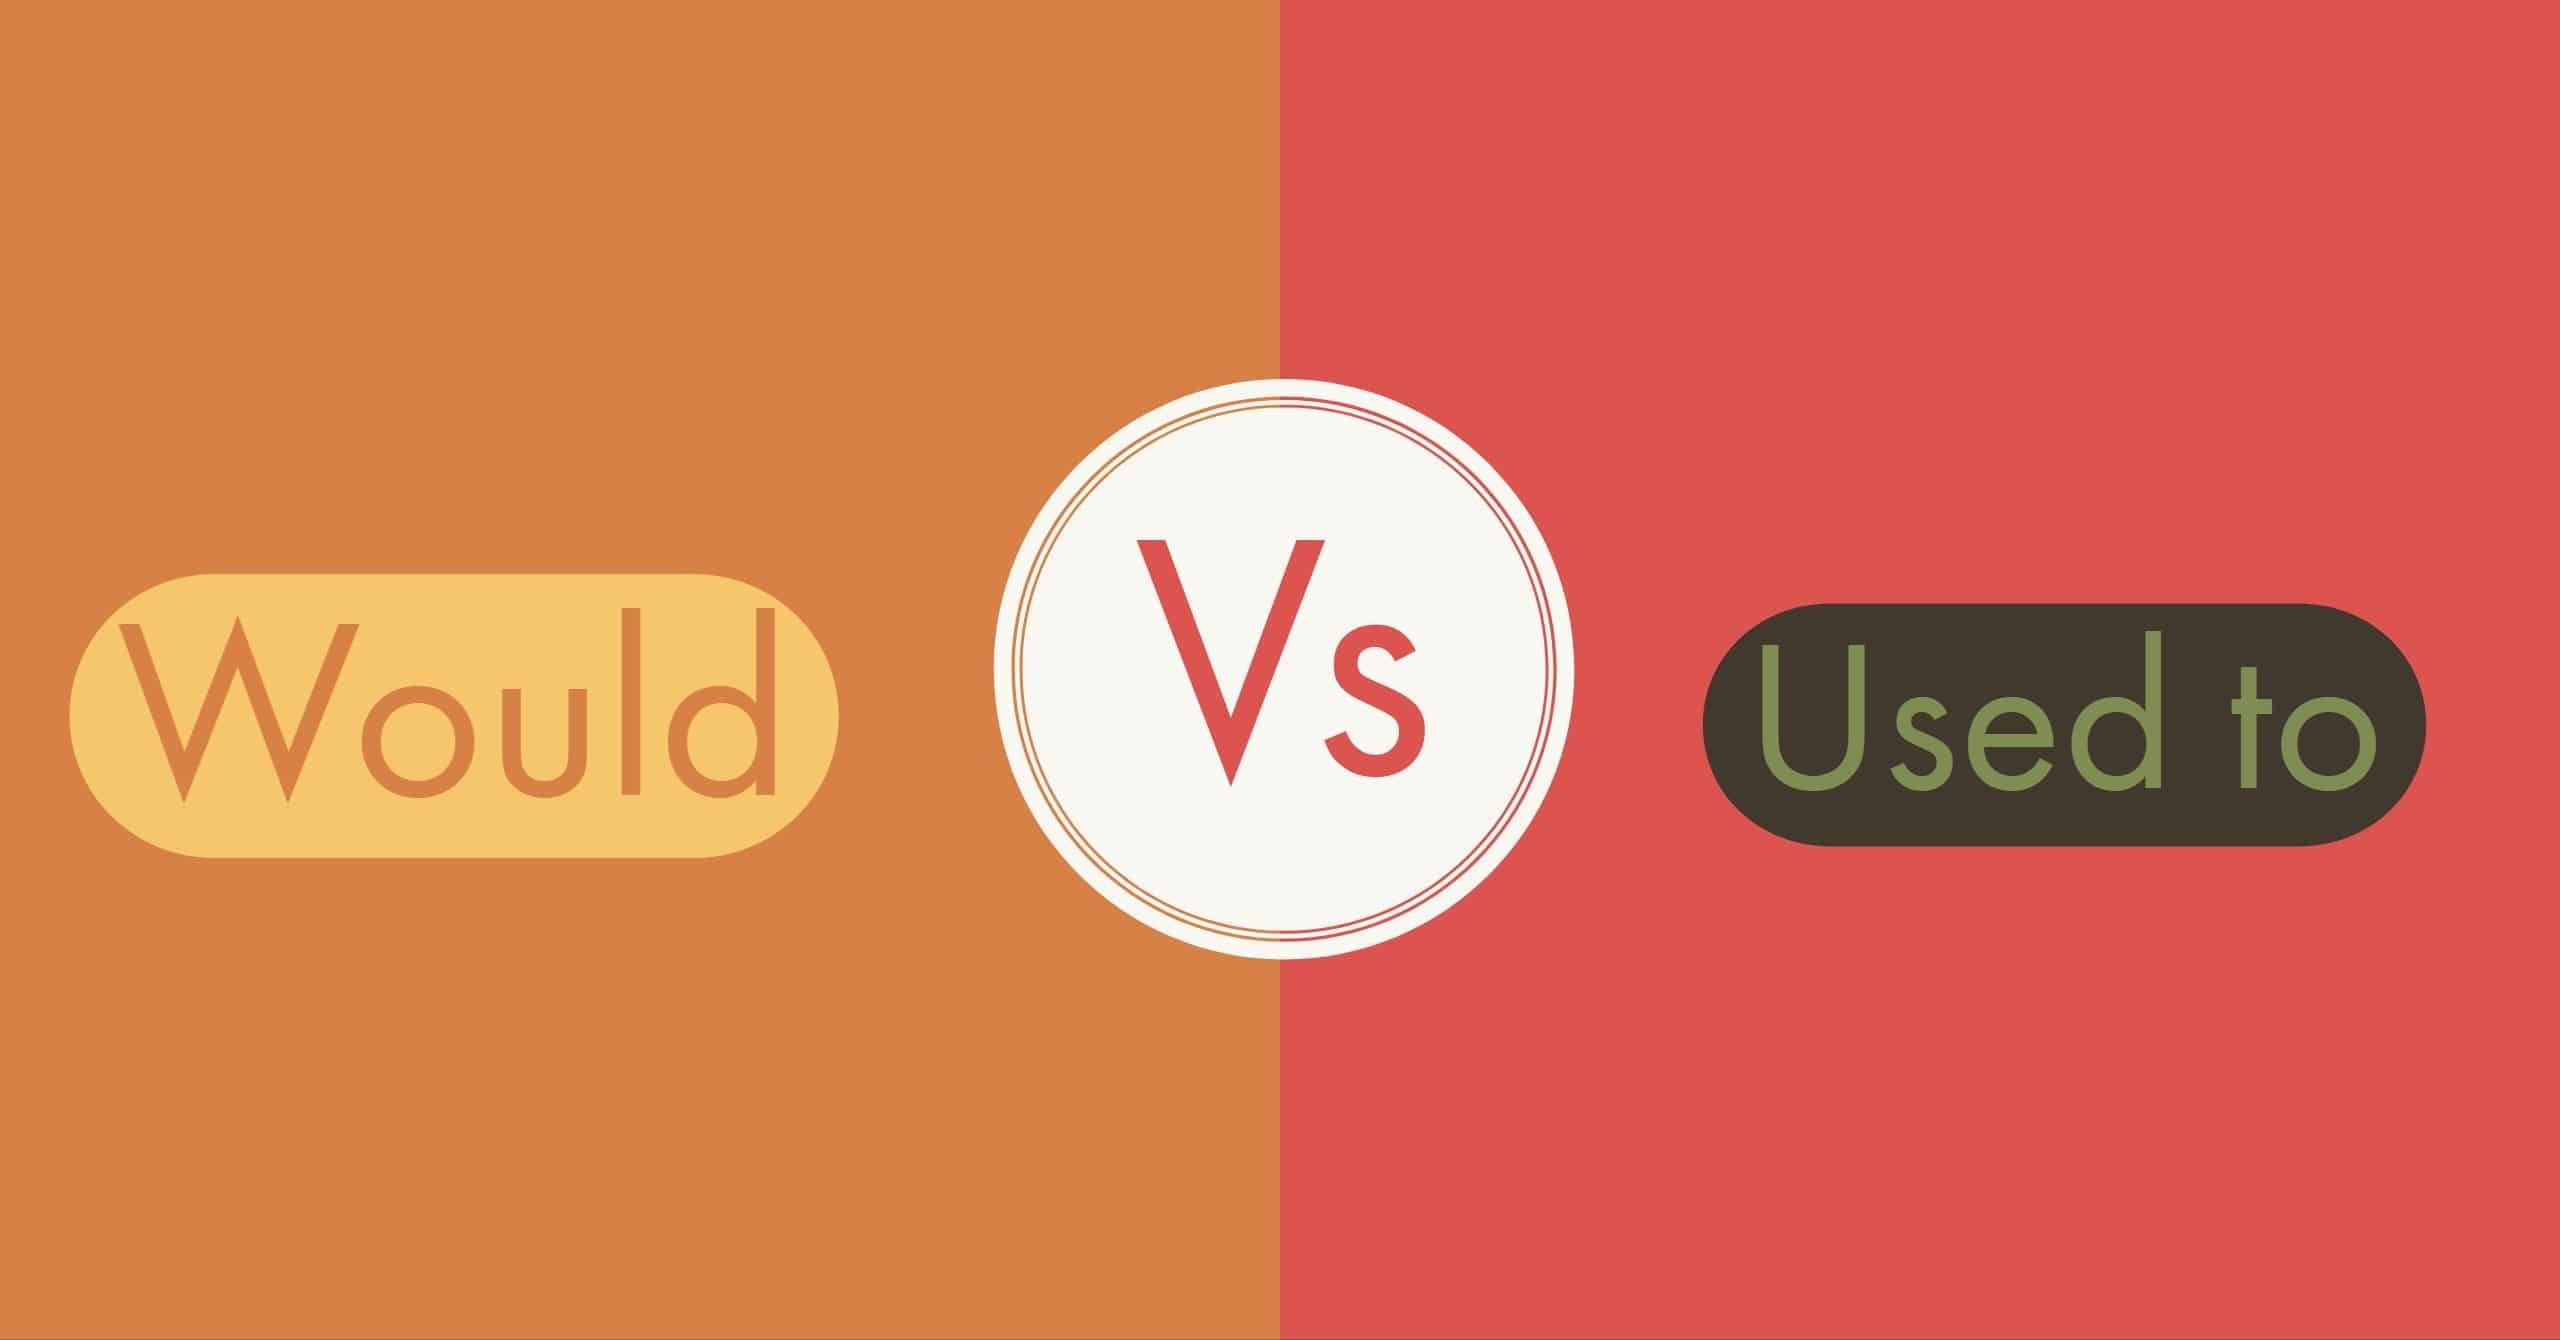 Would Vs. Used to